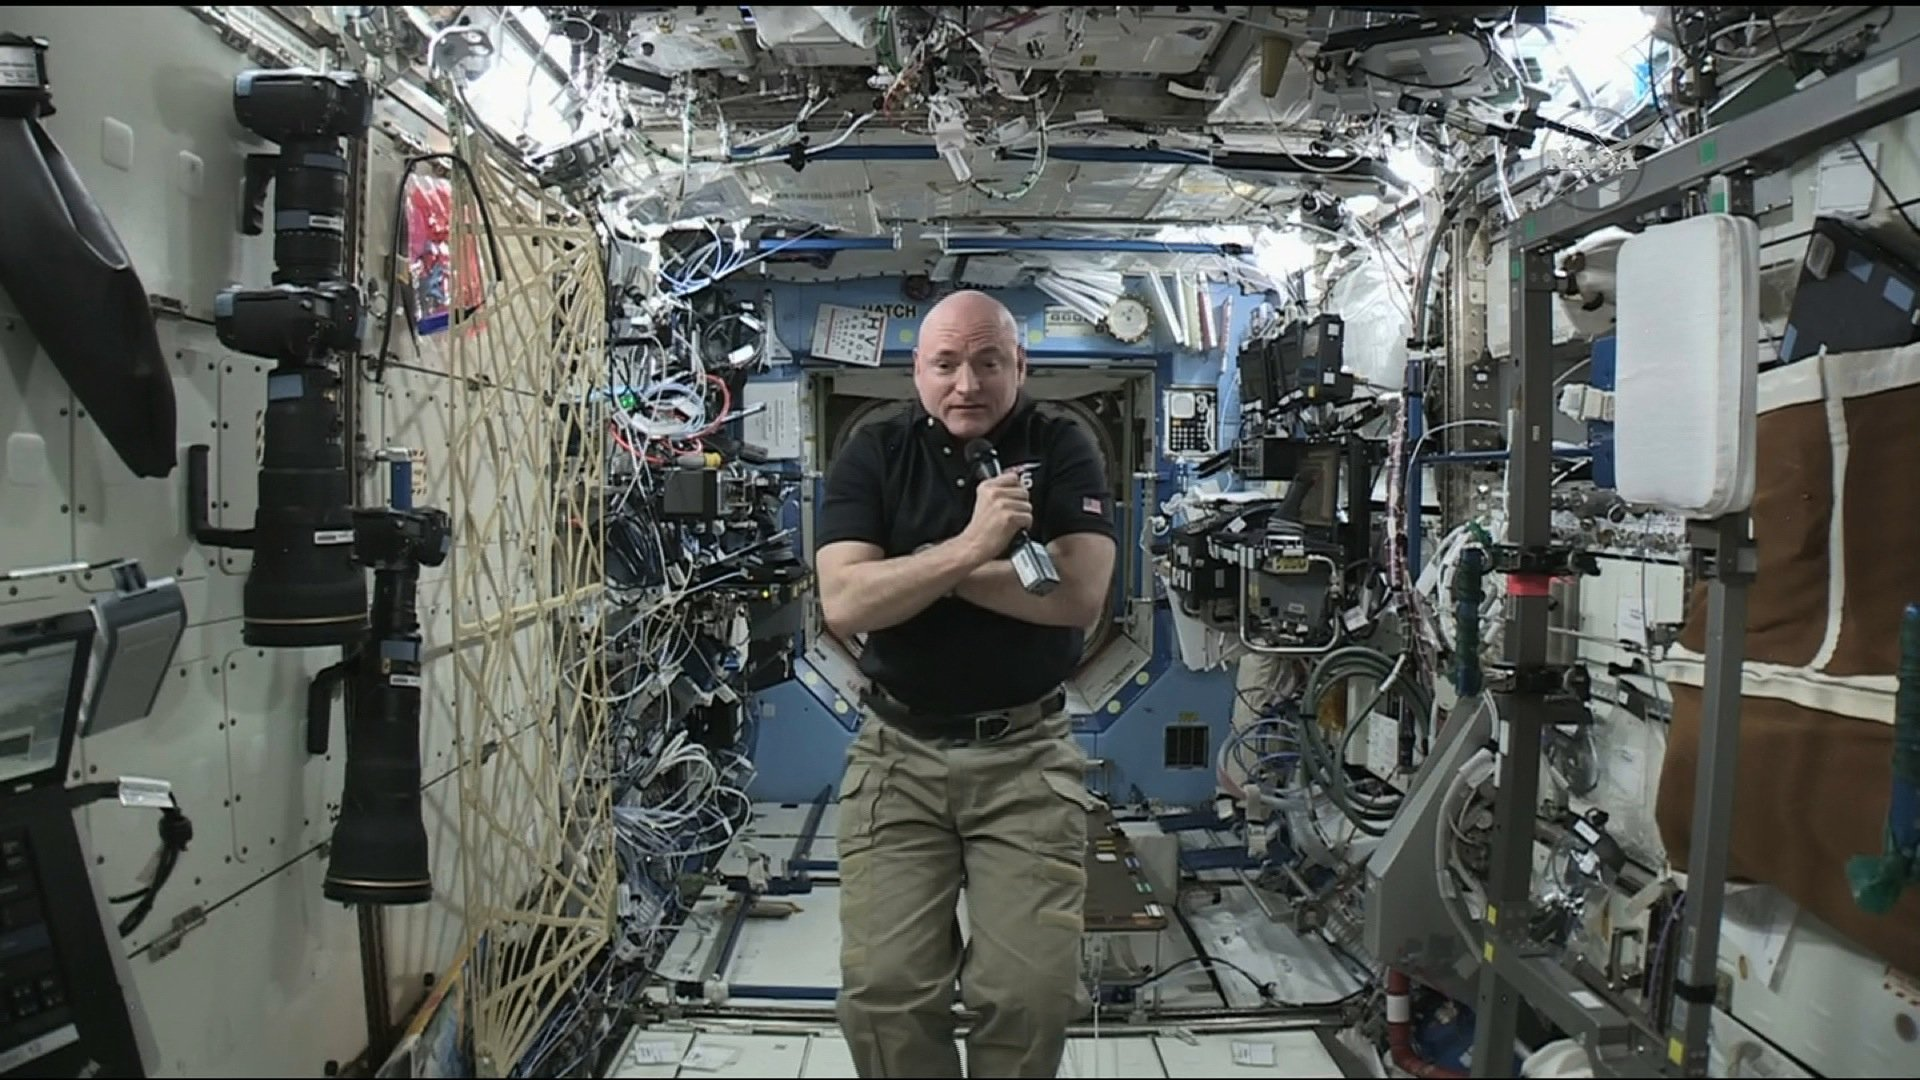 NASA astronaut Scott Kelly is due to be back on Earth. Kelly has completed a nearly yearlong mission on the International Space Station, the longest any U.S. astronaut has been in space. He's set to come home on Tuesday, riding back to Earth on a Russian Soyuz spacecraft.